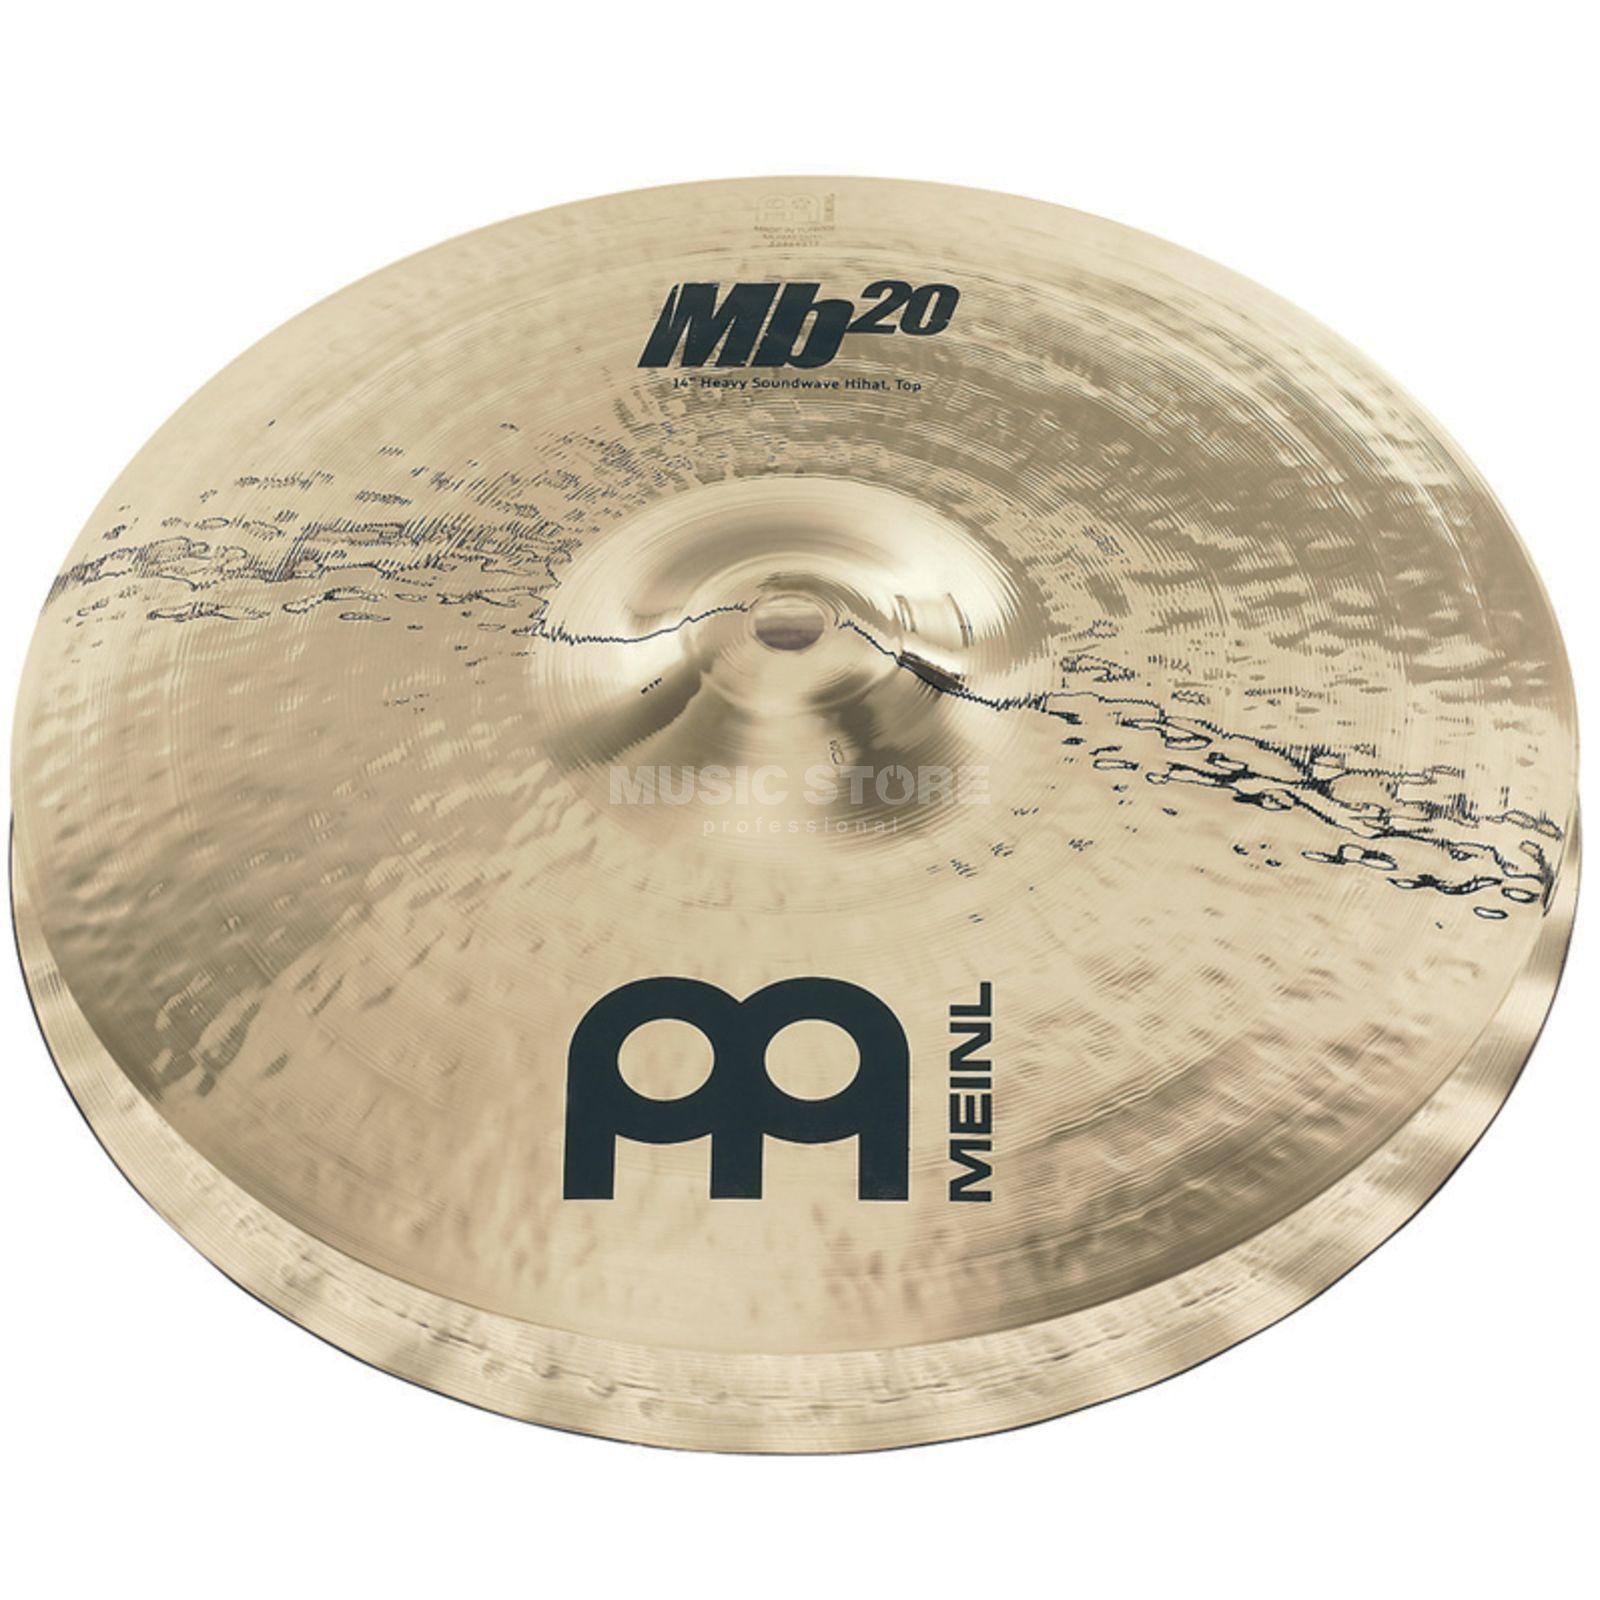 "Meinl MB20 Heavy Soundwave HiHat 14"" MB20-14HSW-B,Brilliant Produktbild"